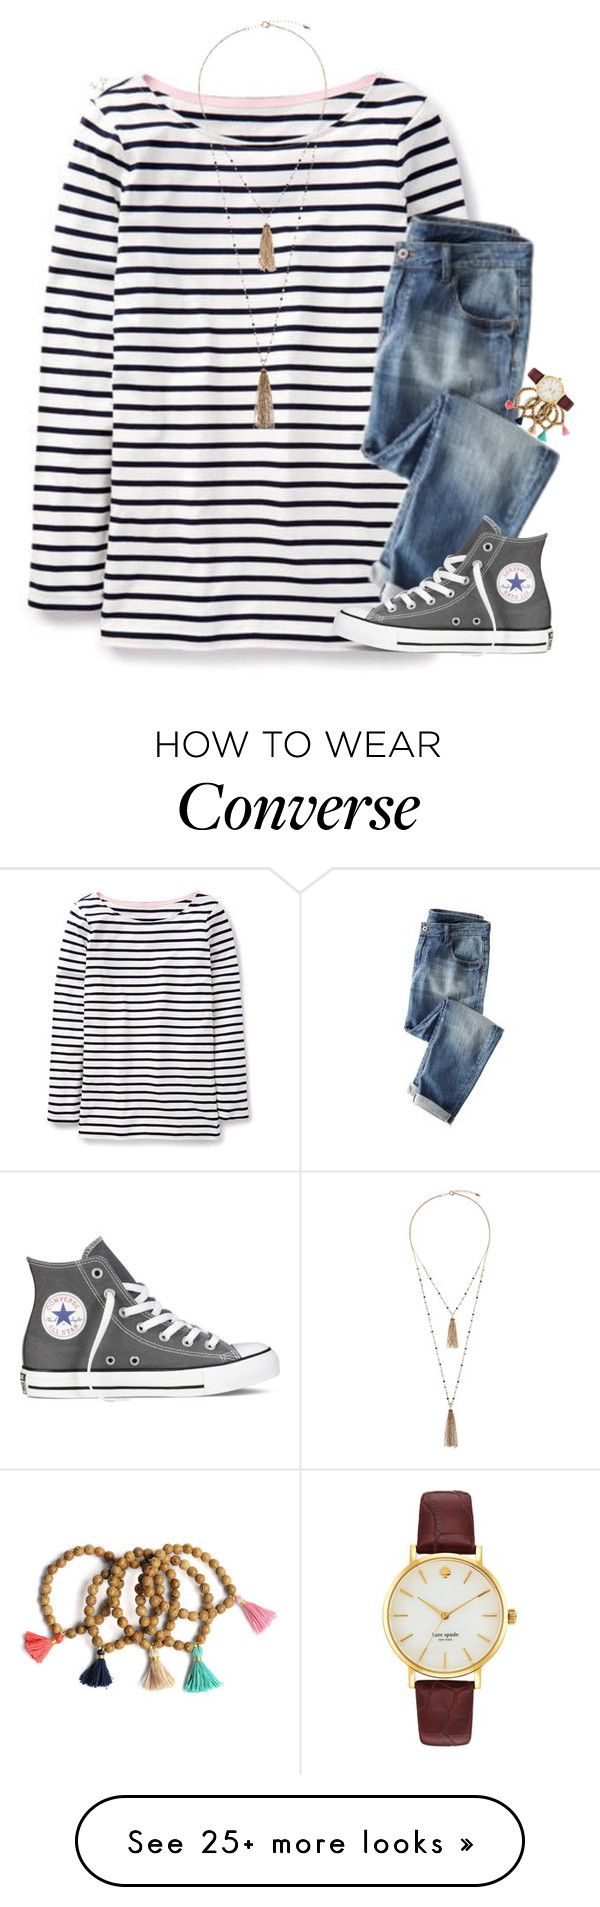 """""""My Youth Is Yours Trippin' On Stars; Sippin' Waterfalls"""" by cfc-prep-sc on Polyvore featuring Boden, Wrap, Miadora, Eloquii, Converse, Kate Spade, women's clothing, women, female and woman"""